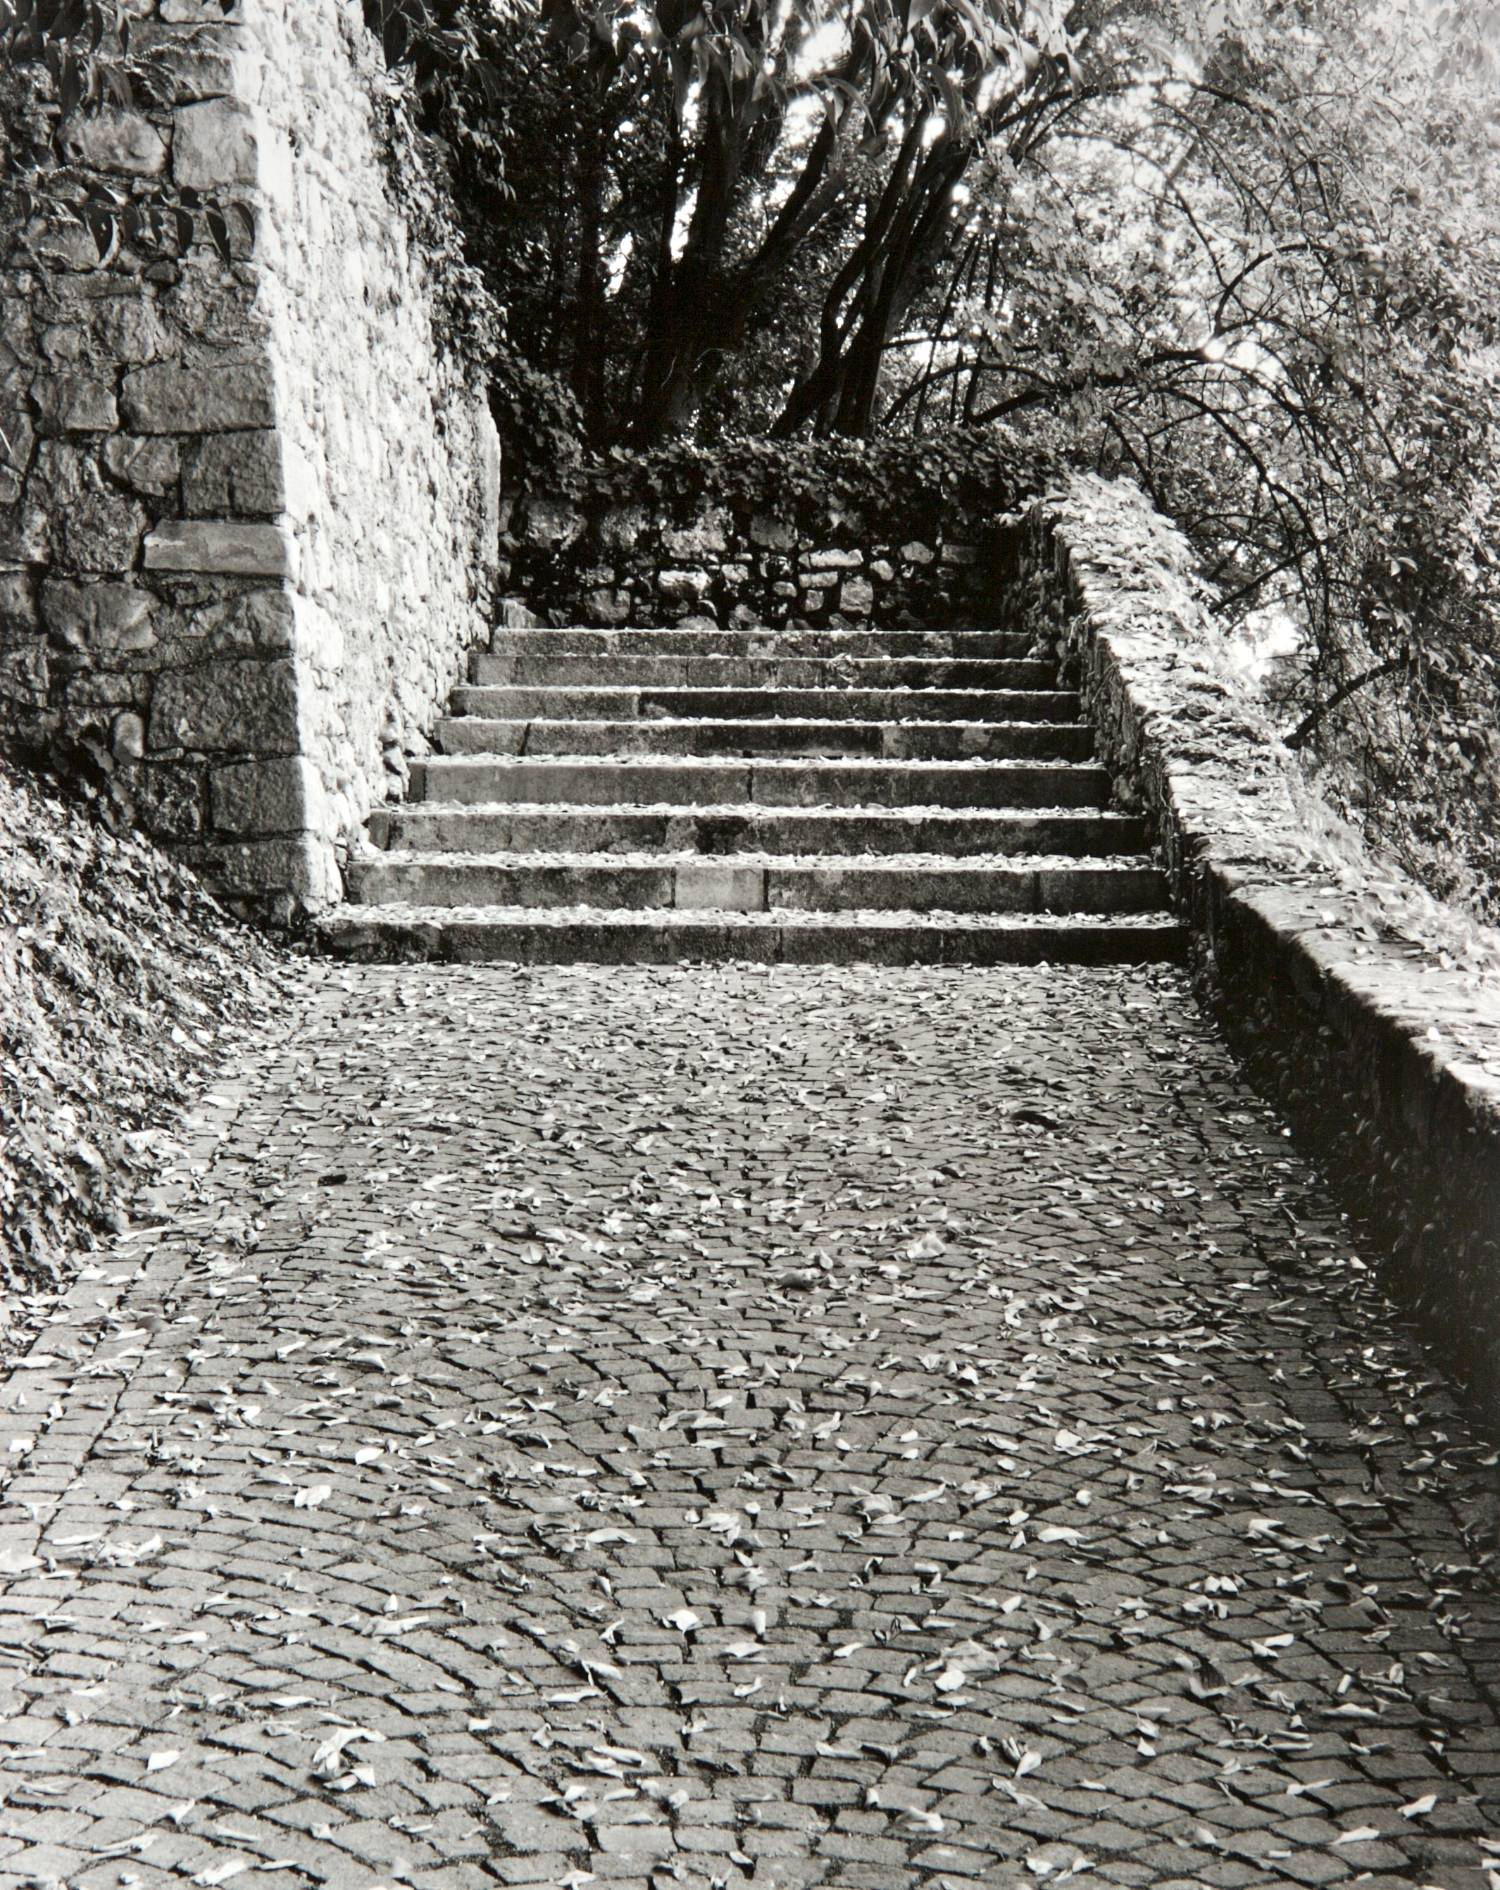 Stairs (Asolo, Italy)